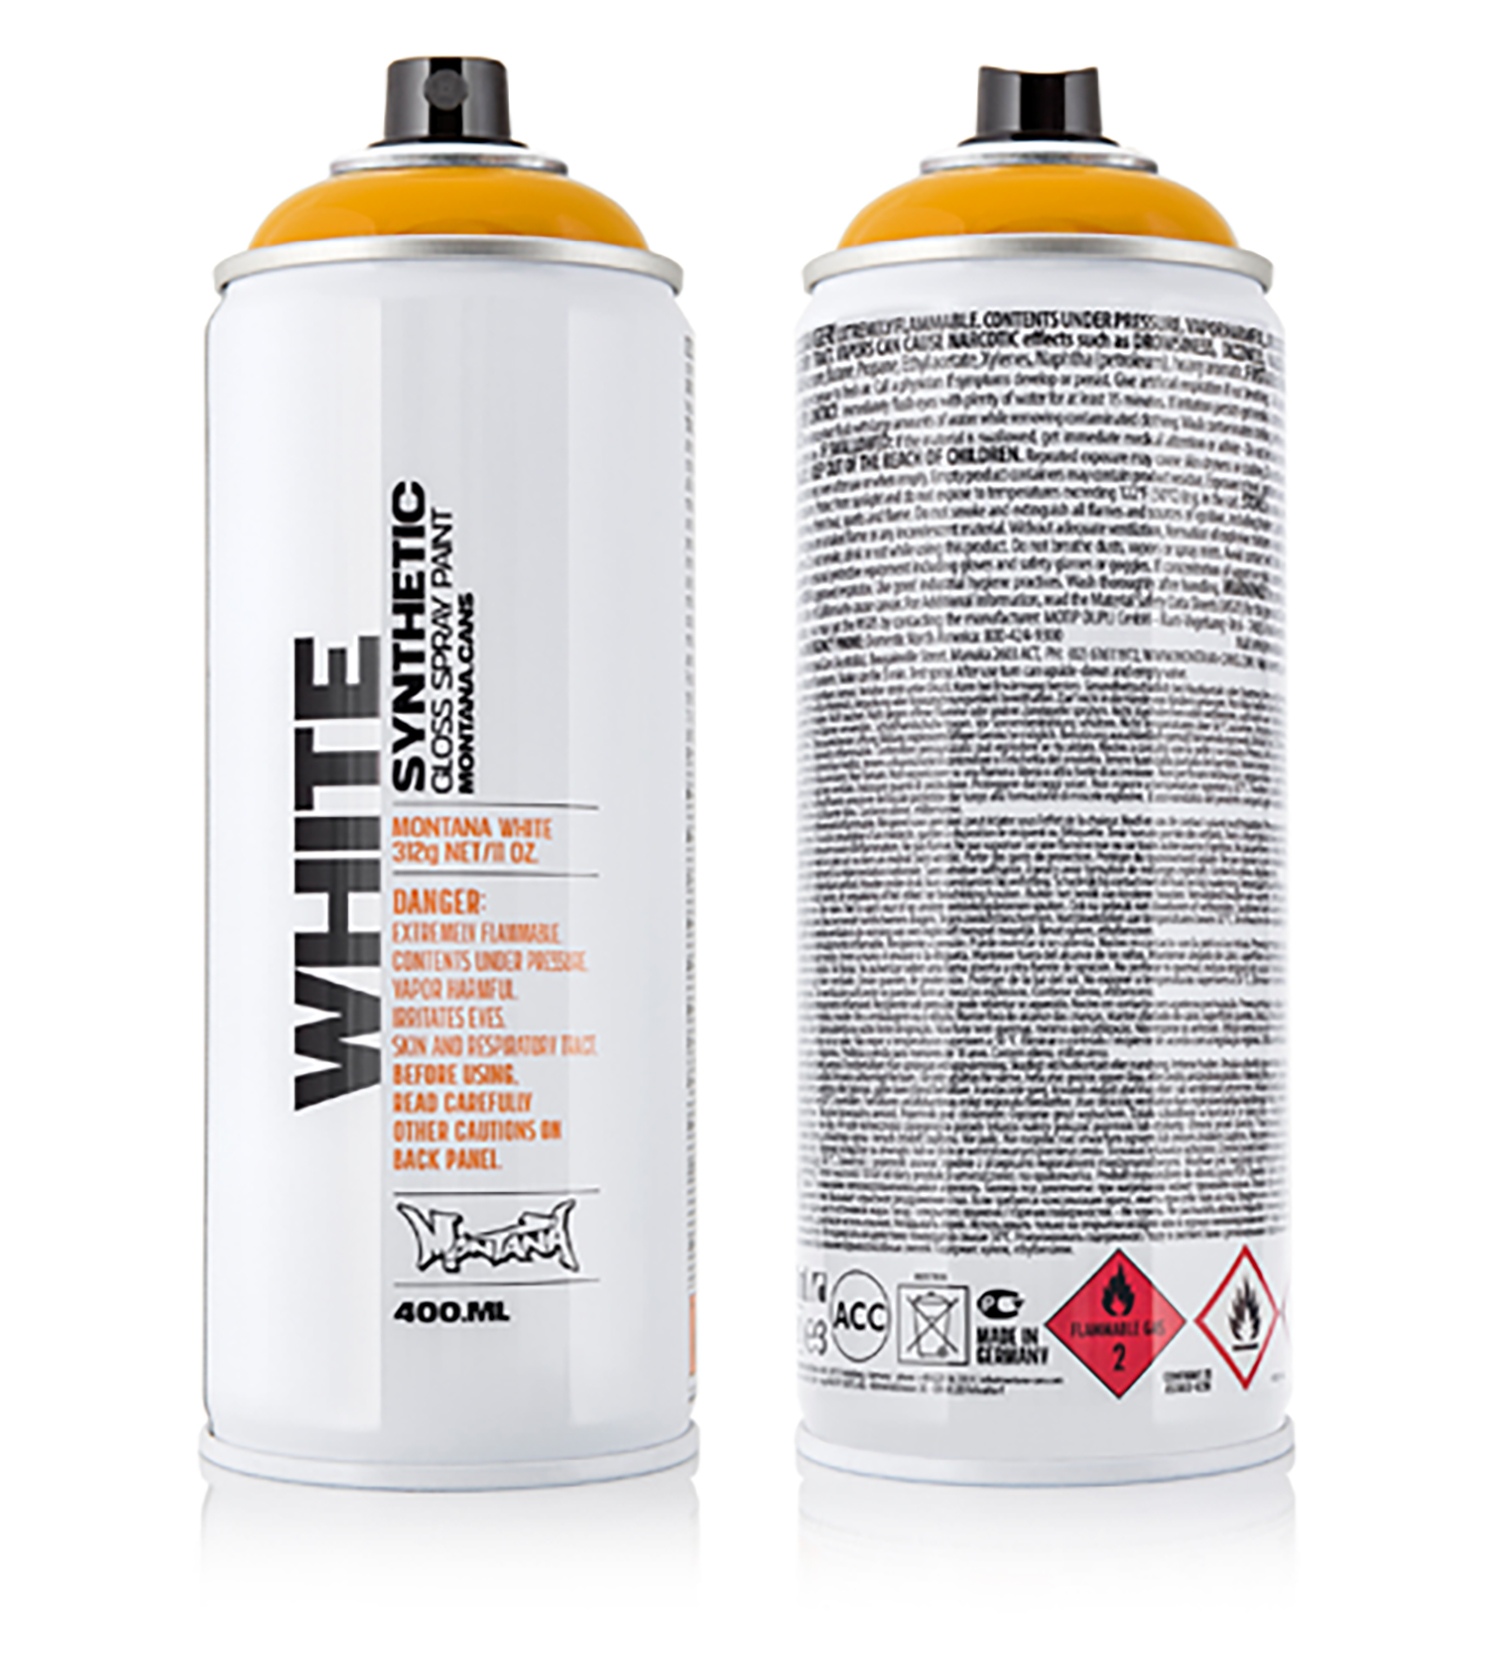 MONTANA-WHITE-SPRAY-400ML-1310